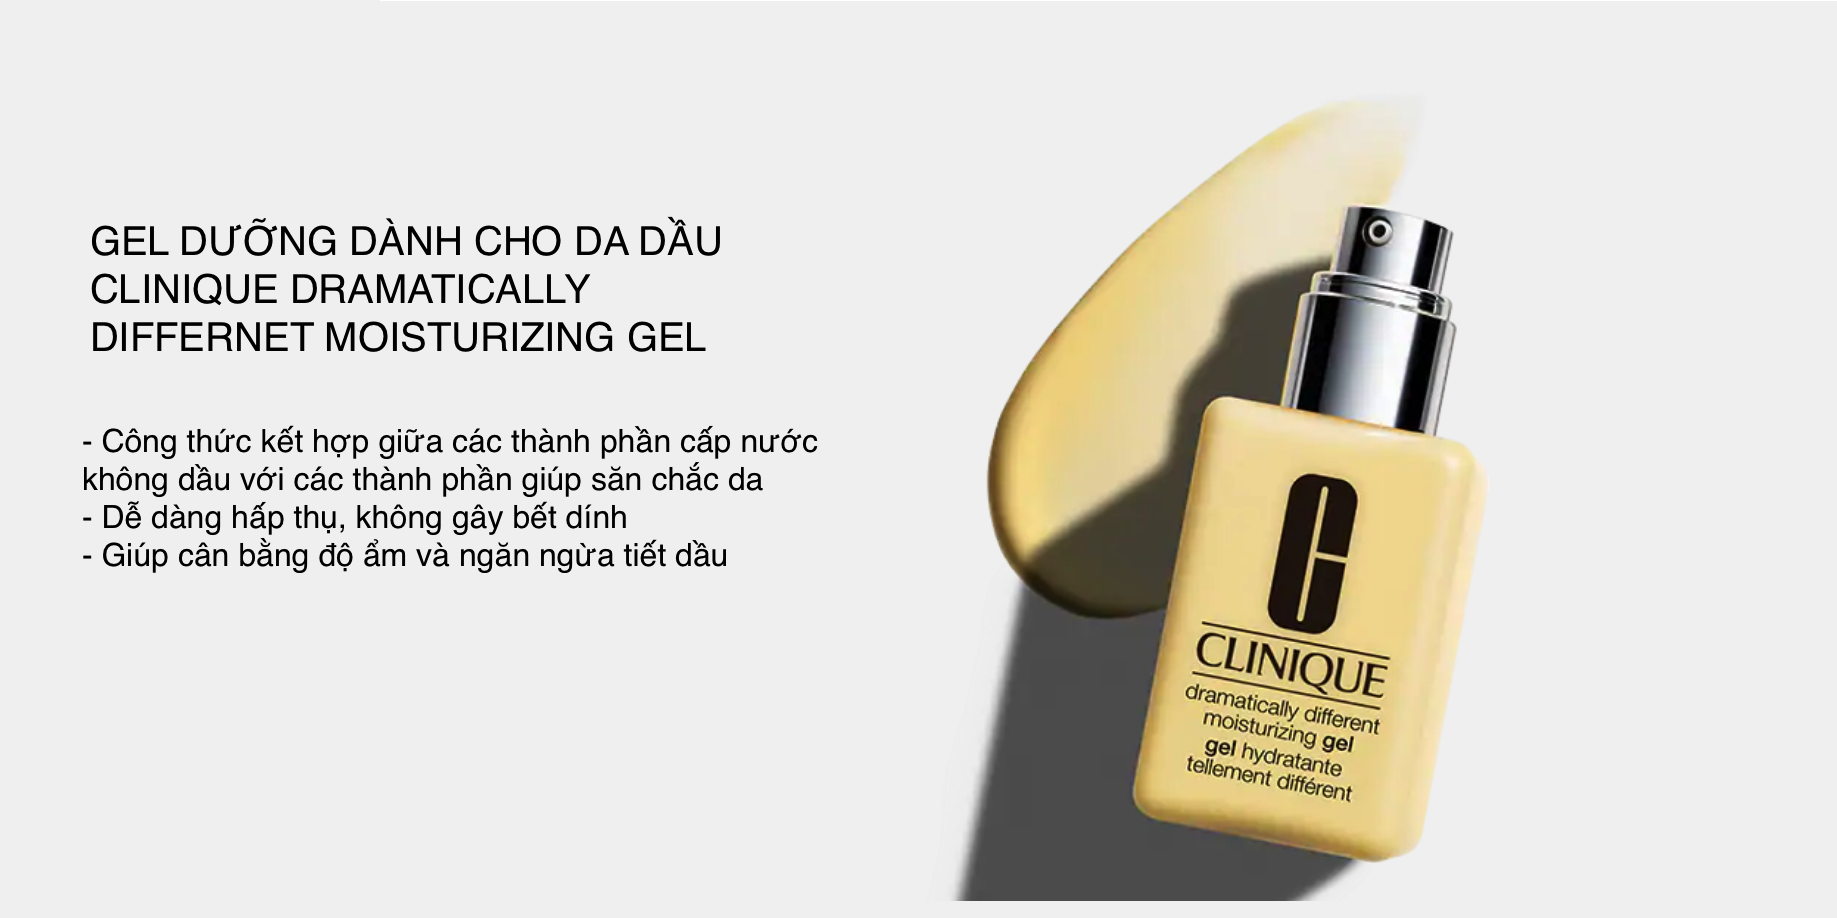 Clinique Dramatically Different™ Moisturizing Gel